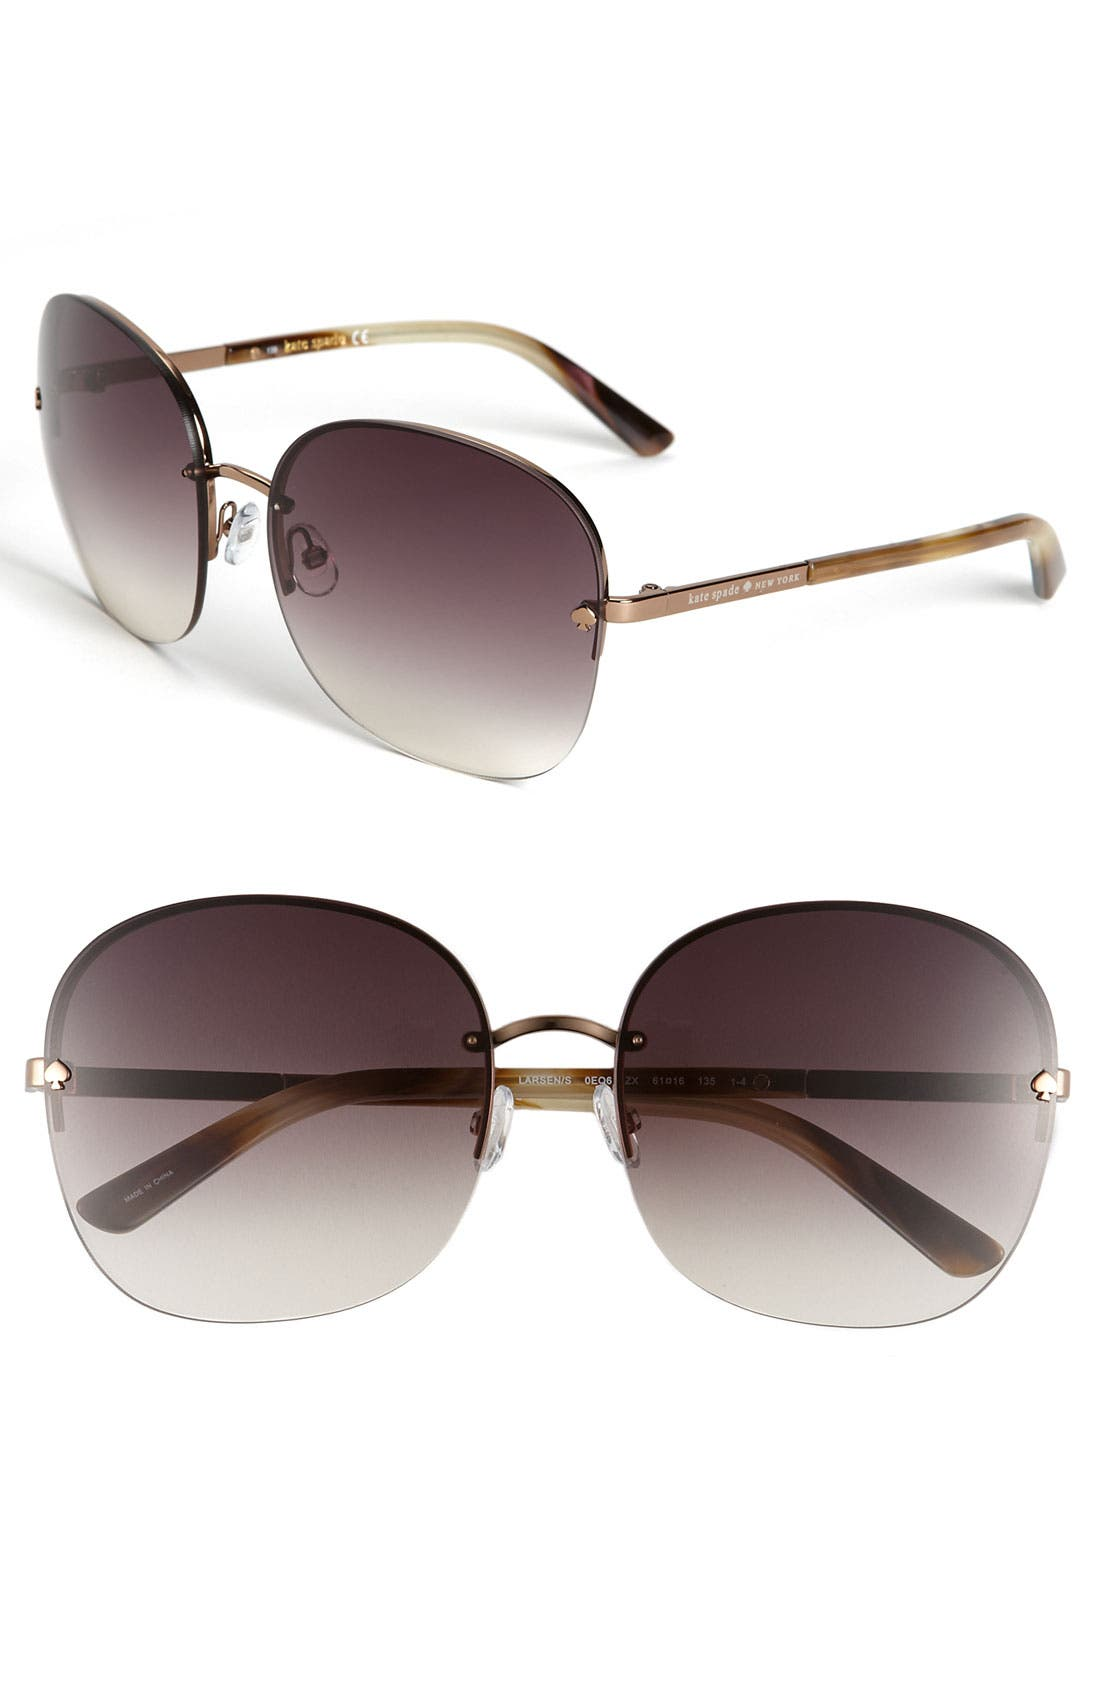 Main Image - kate spade new york 'larsen' rimless sunglasses